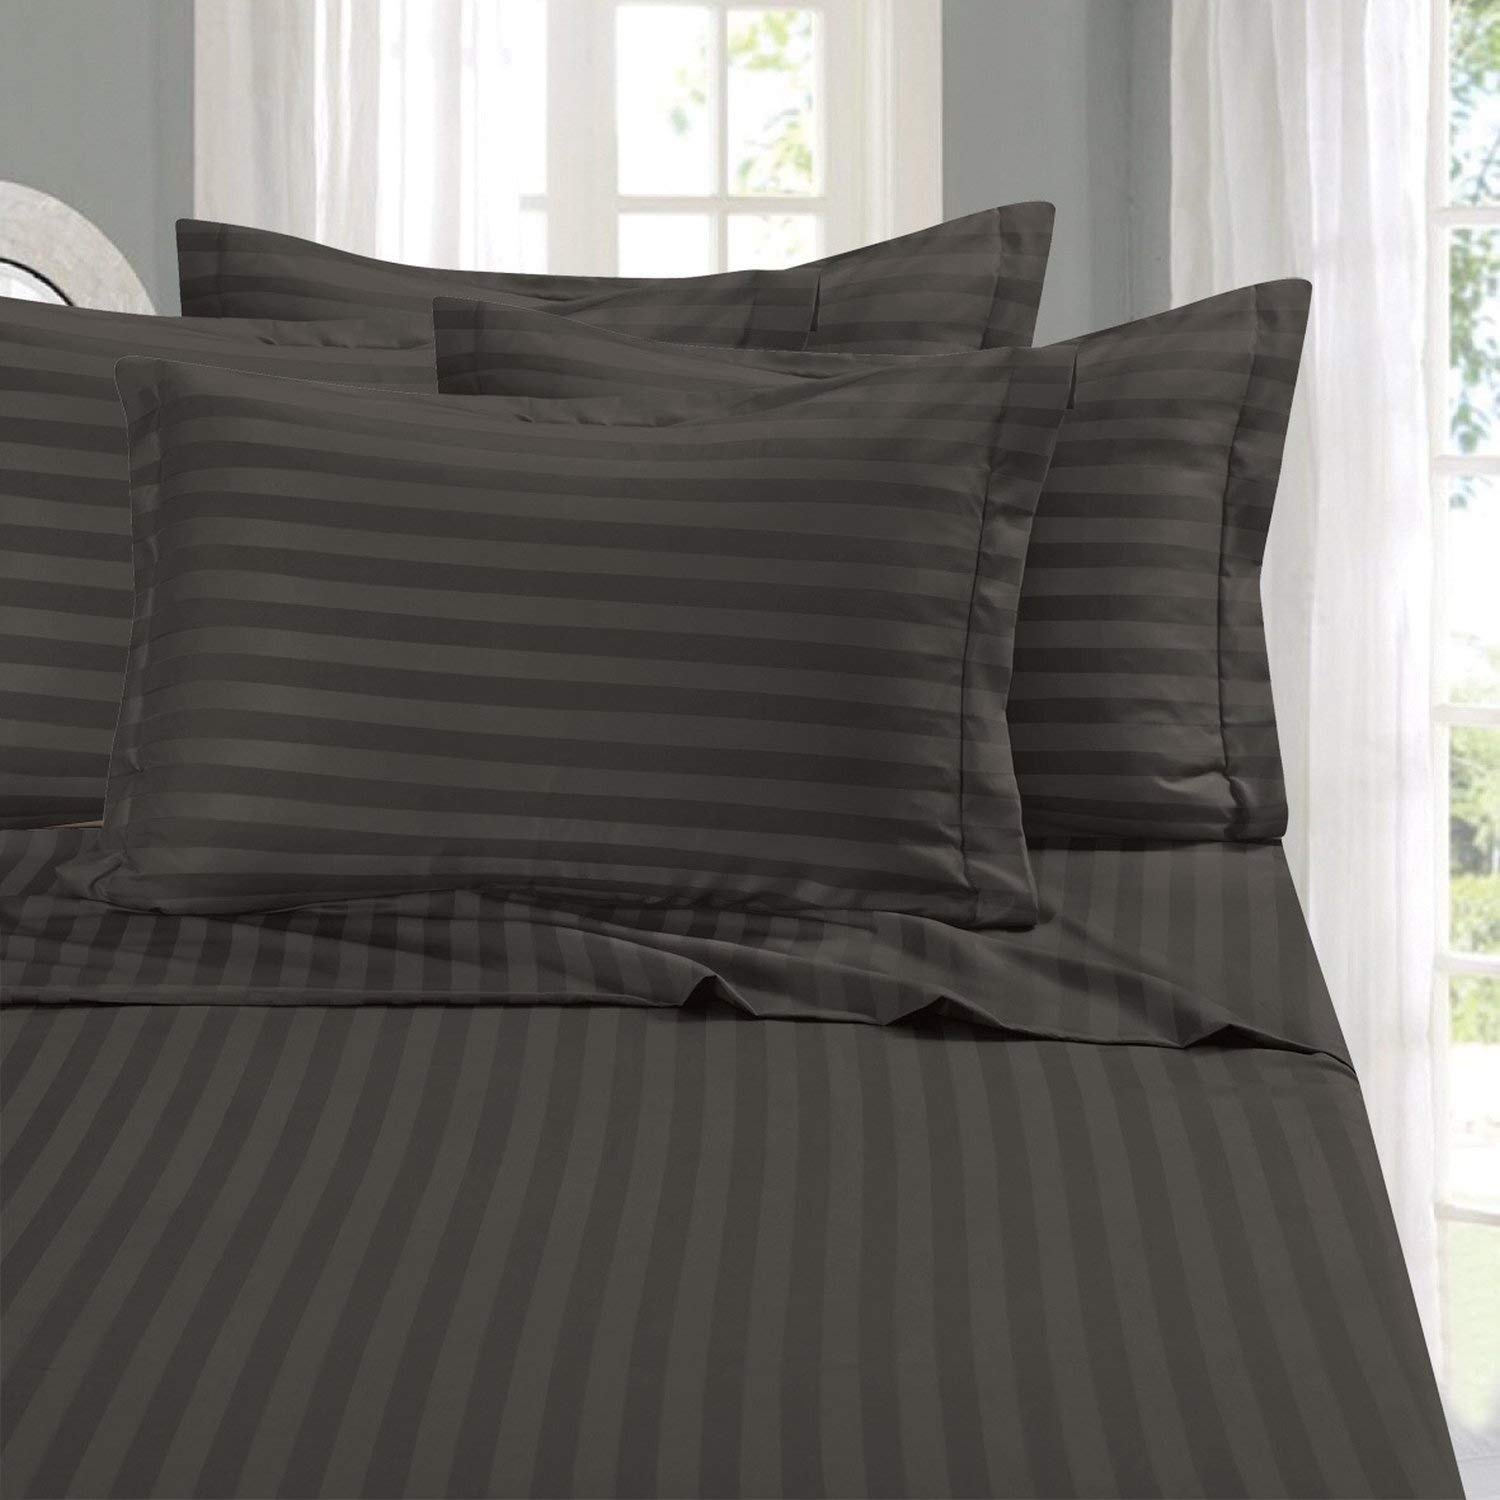 Elegant Comfort Best, Softest, Coziest 6-Piece Sheet Sets! - 1500 Thread Count Egyptian Quality Luxurious Wrinkle Resistant 6-Piece Damask Stripe Bed Sheet Set, California King Grey